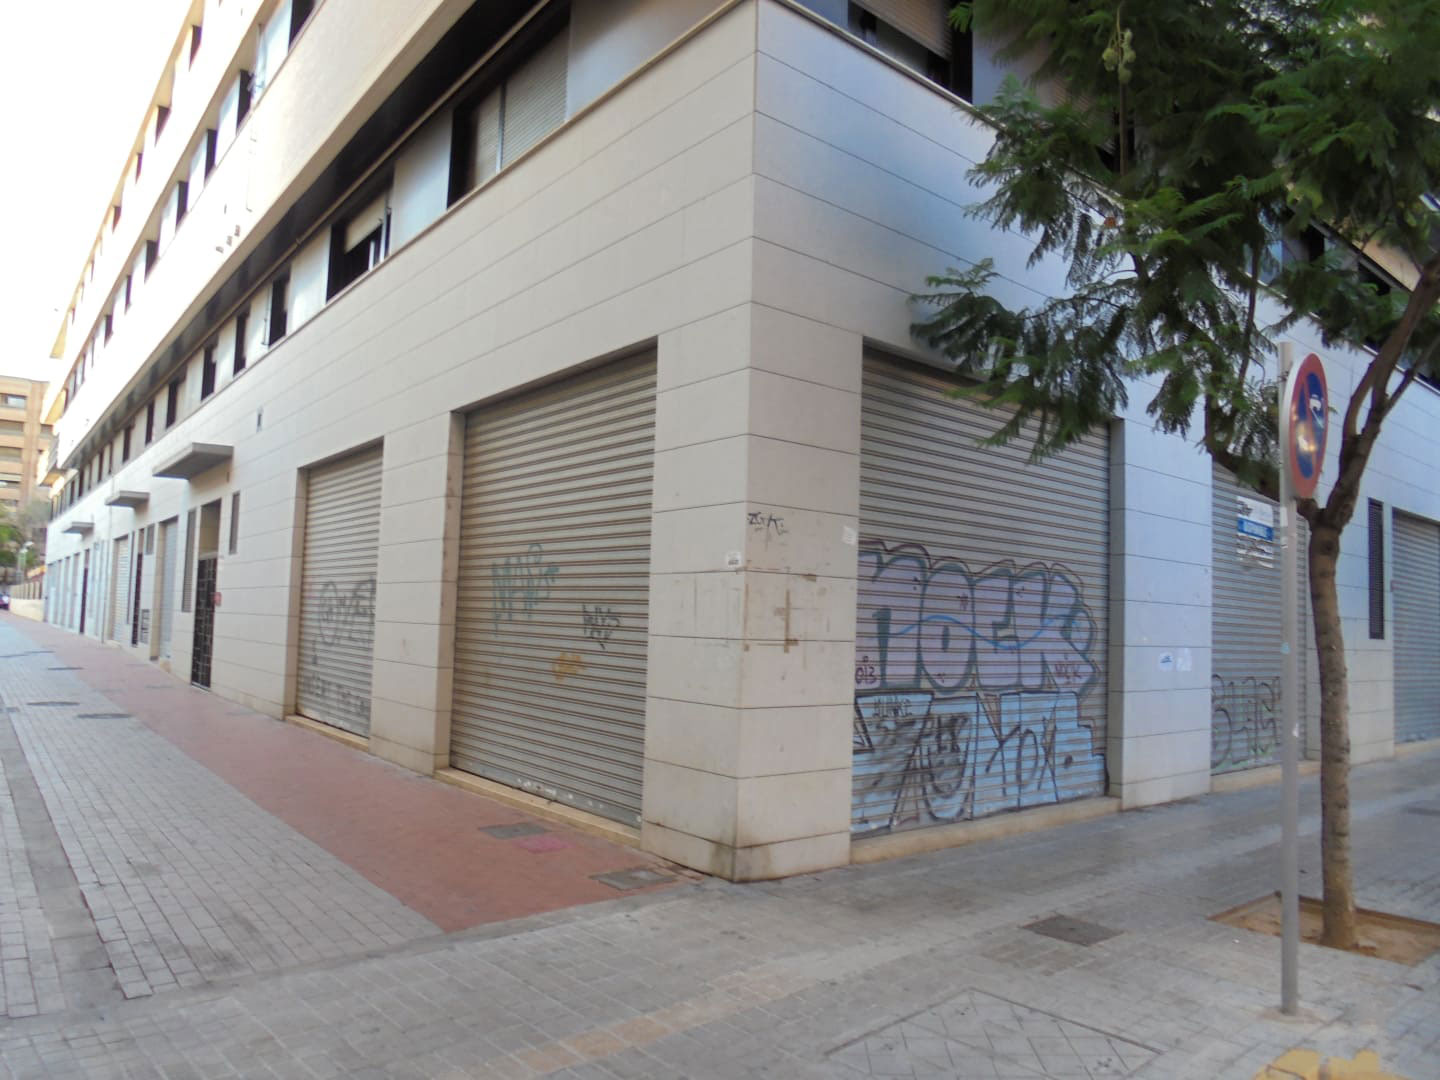 Local en venta en Torrent, Valencia, Calle Padre Mendez, 700.000 €, 141 m2